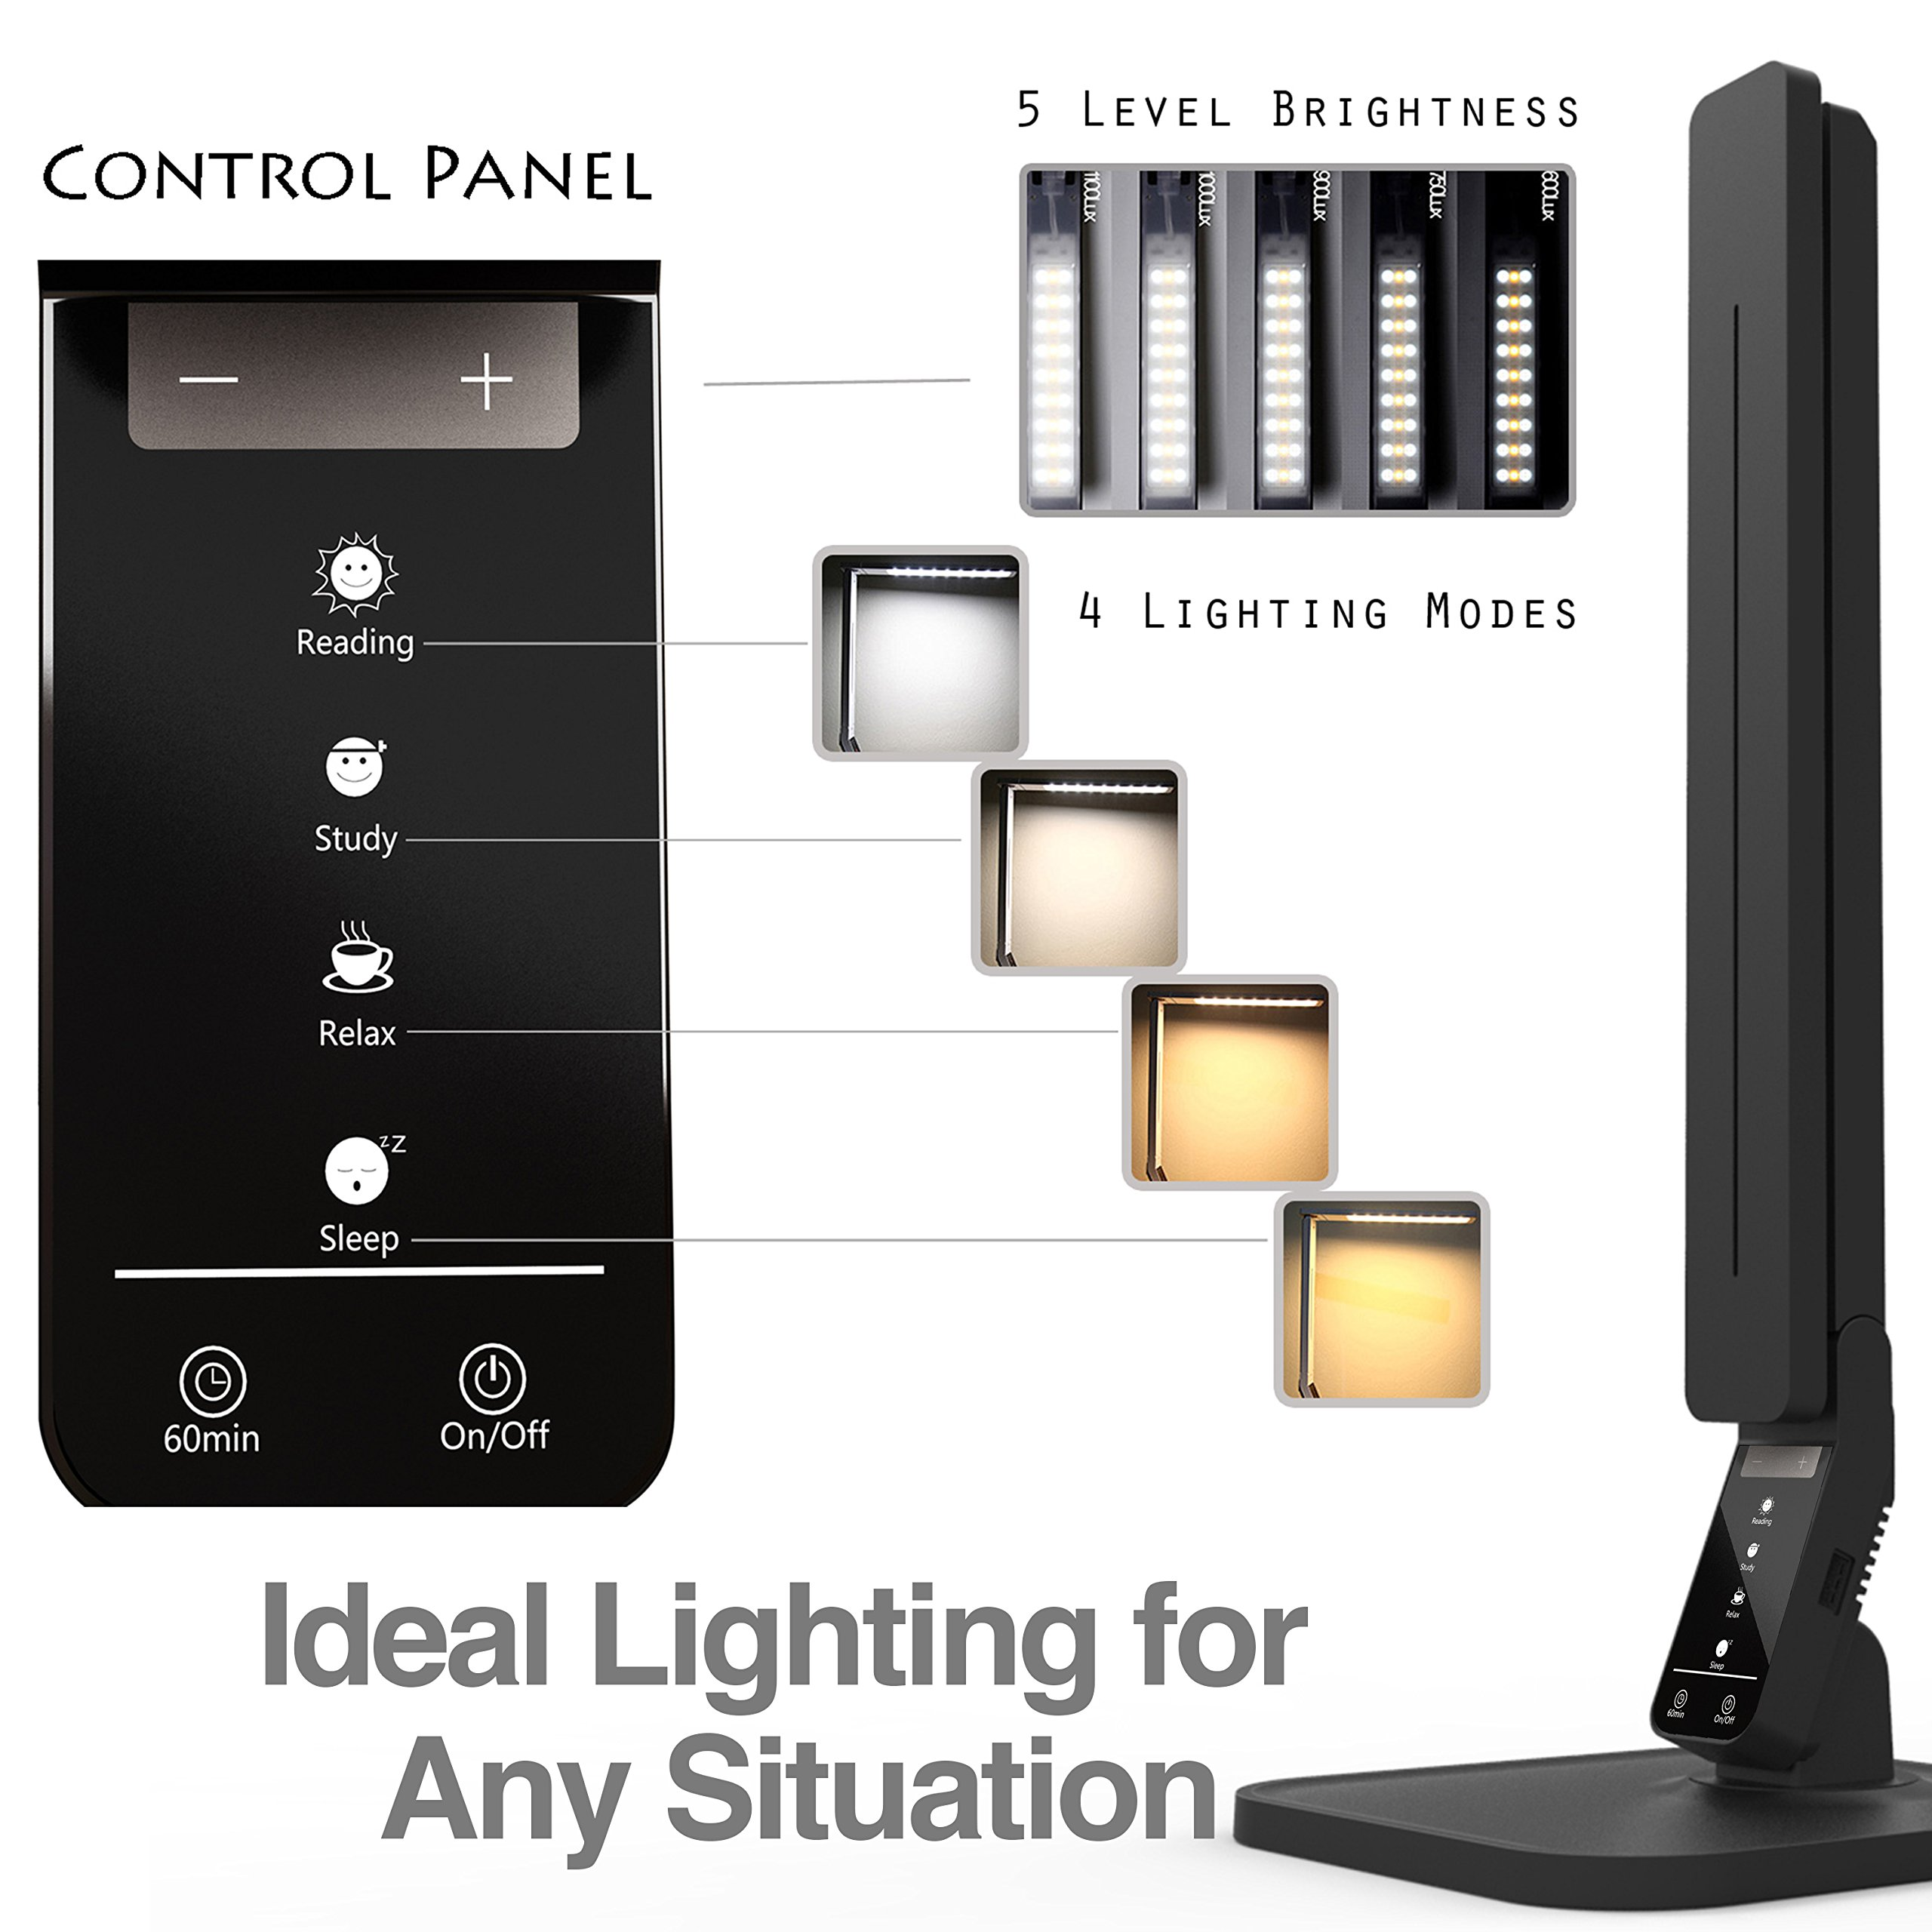 Lampat LED Desk Lamp, Dimmable LED Table Lamp Black, 4 Lighting Modes, 5-Level Dimmer, Touch-Sensitive Control Panel, 1-Hour Auto Timer, 5V/2A USB Charging Port) by LAMPAT (Image #4)